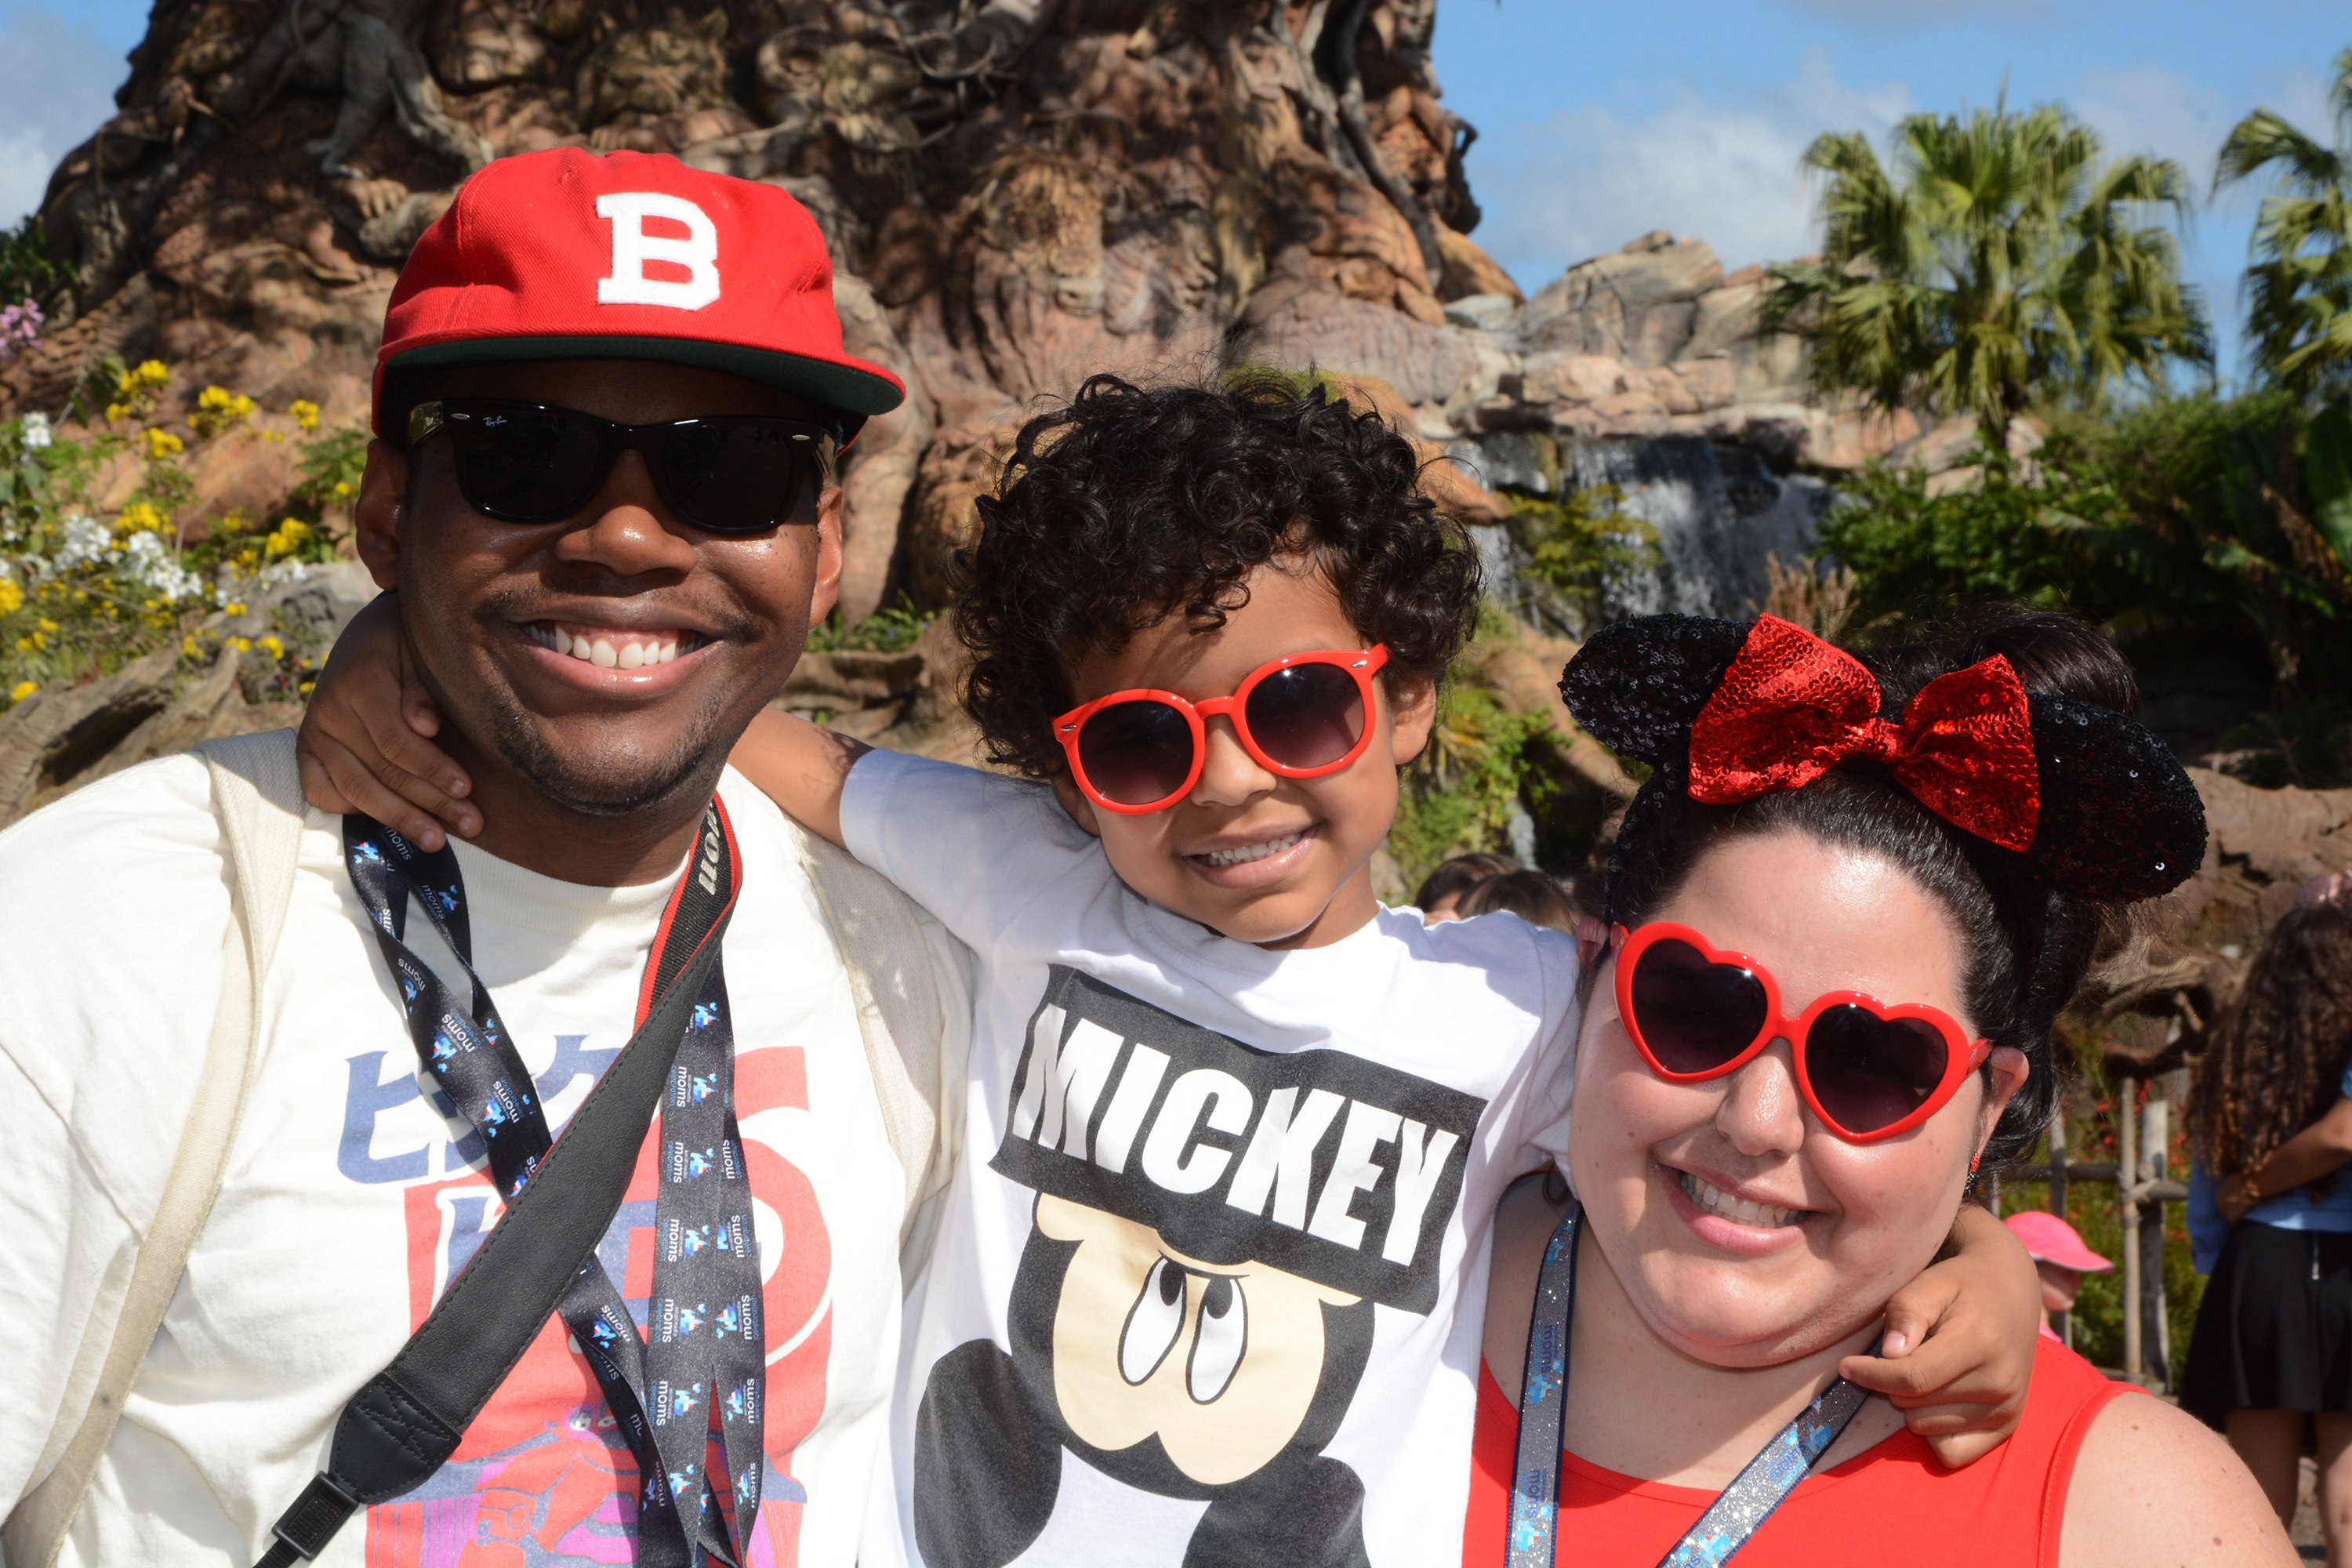 The Pete Family at Walt Disney World Animal Kingdom. Dad, child, and mom smiling in sunglasses in front of a waterfall.